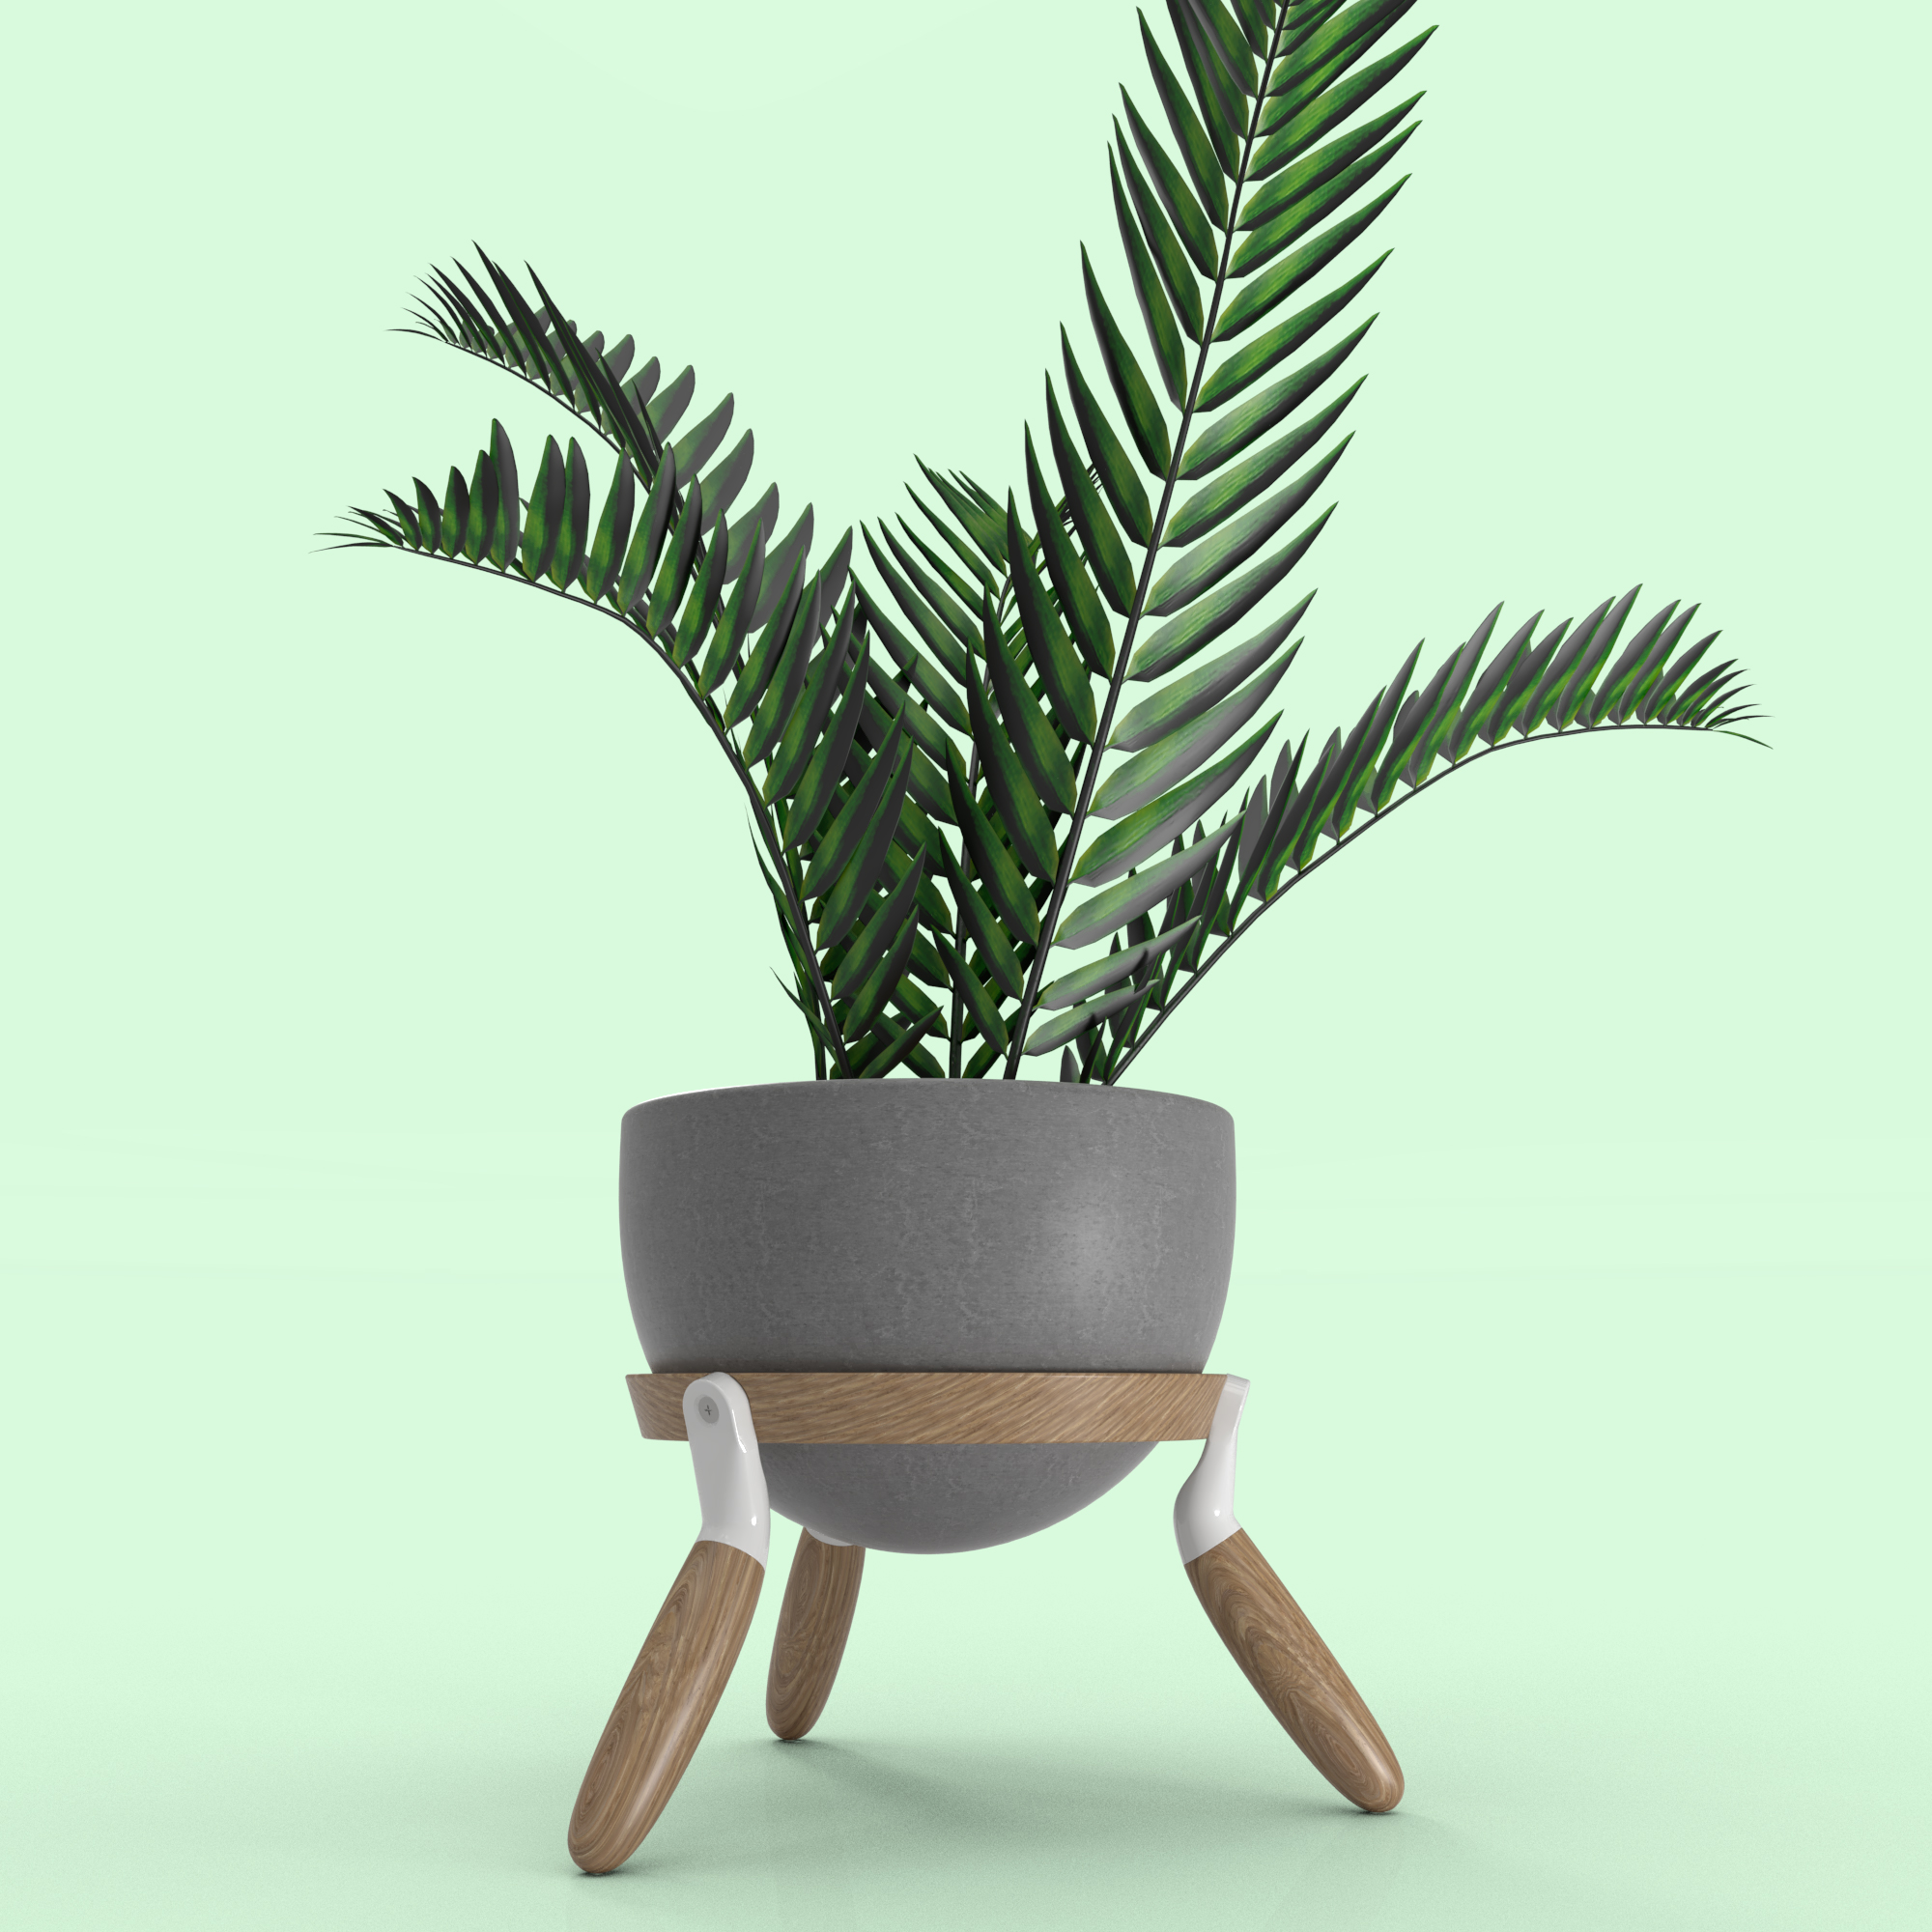 Planter made with wood and concrete